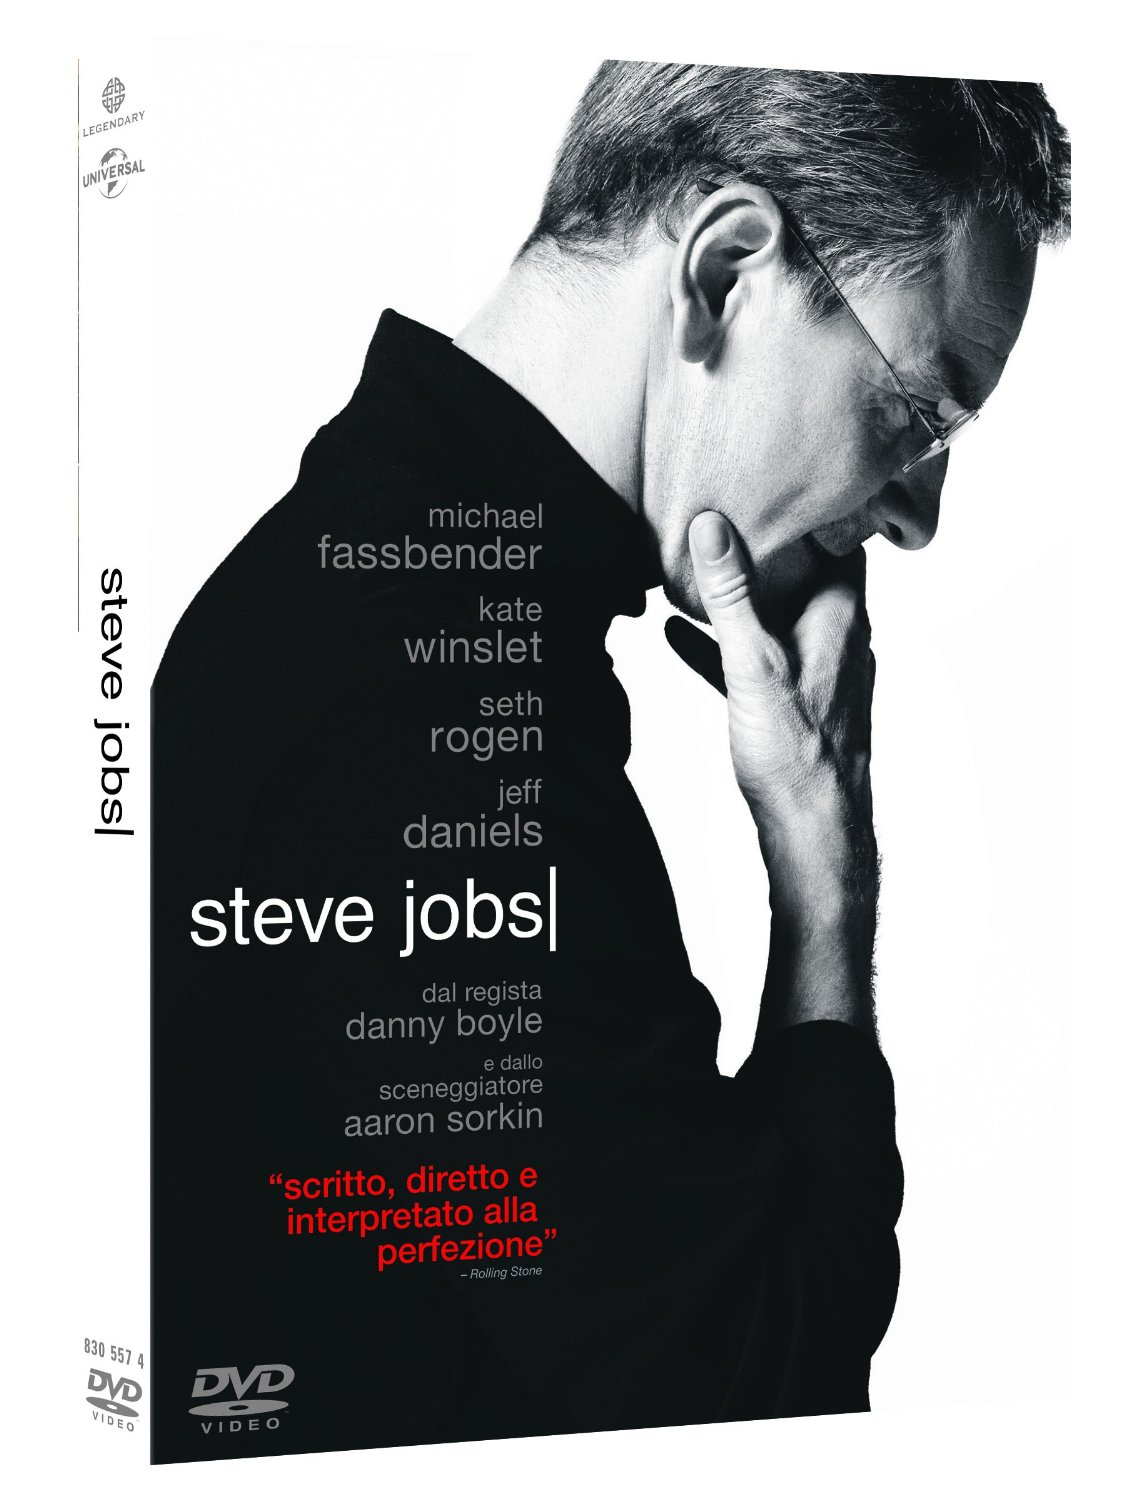 Steve Jobs in dvd e blu-ray